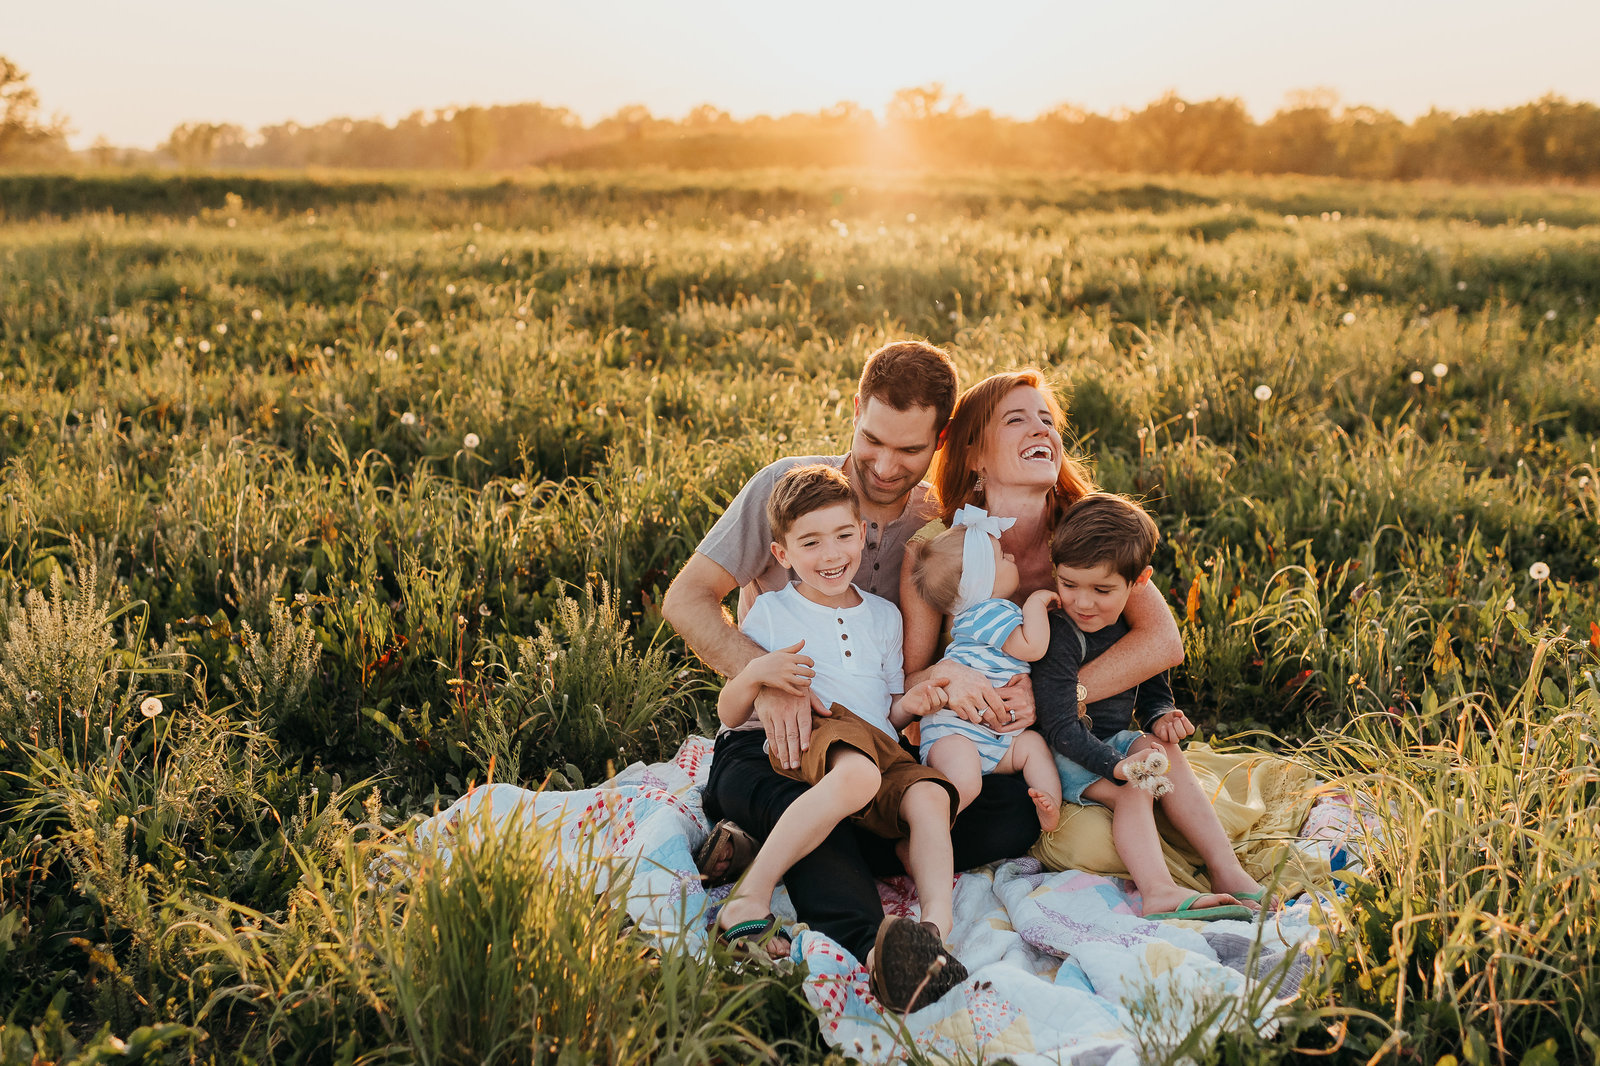 family siting on a blanket laughing in a field at sunset